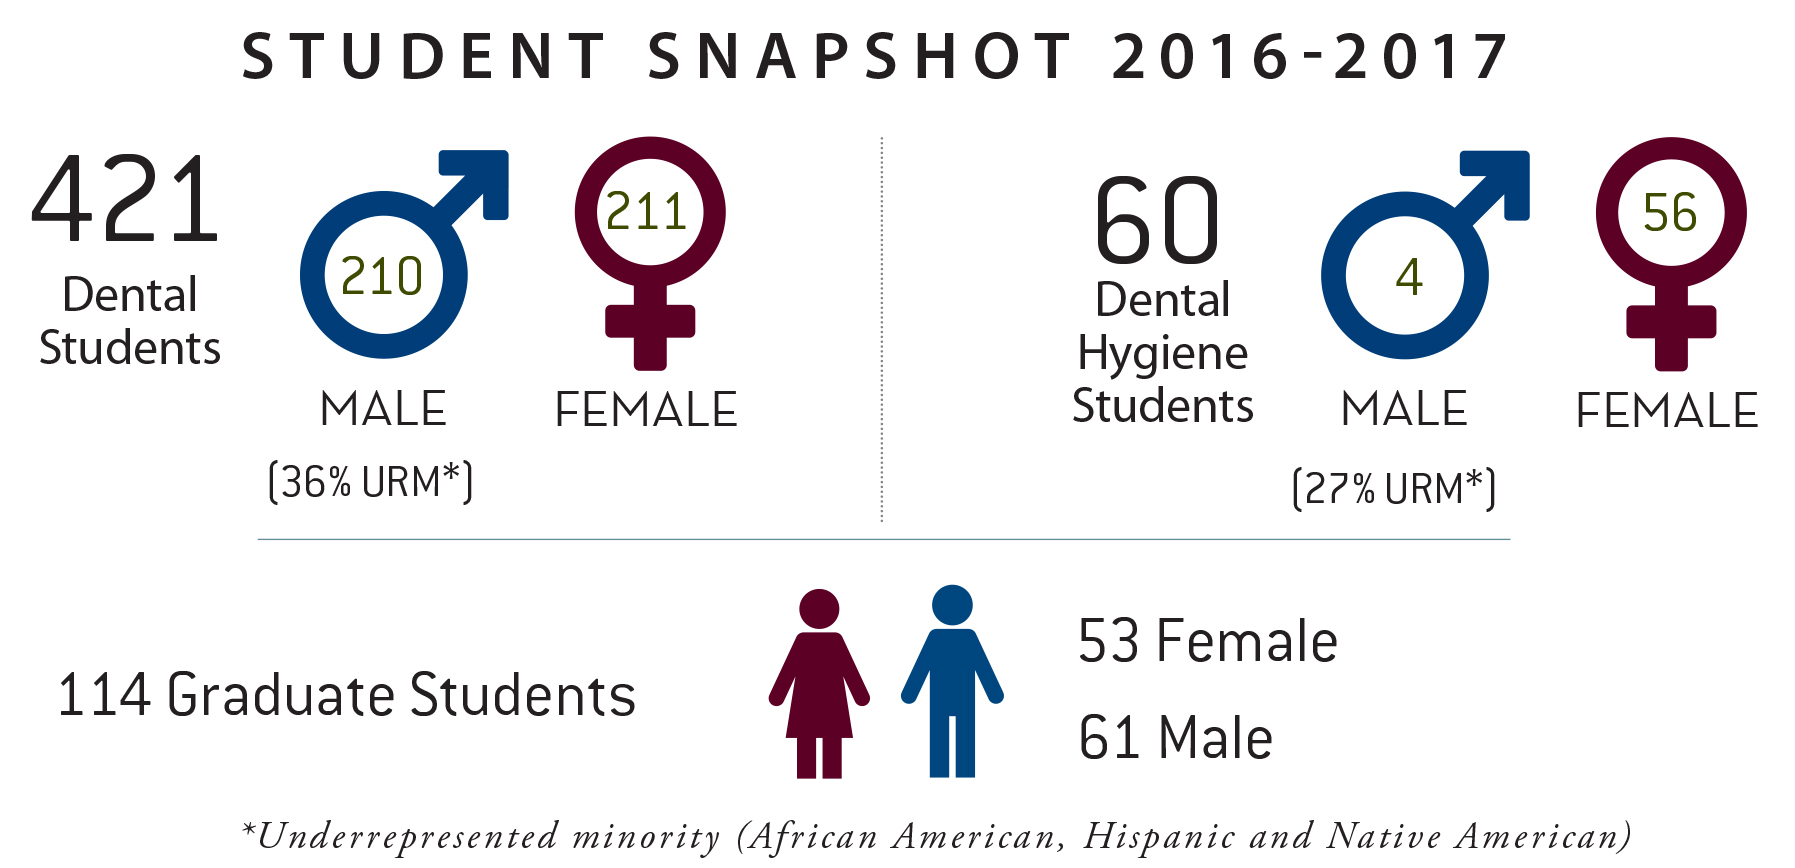 Infographic: Breakdown of students at Texas A&M College of Dentistry for 2016-2017 academic year